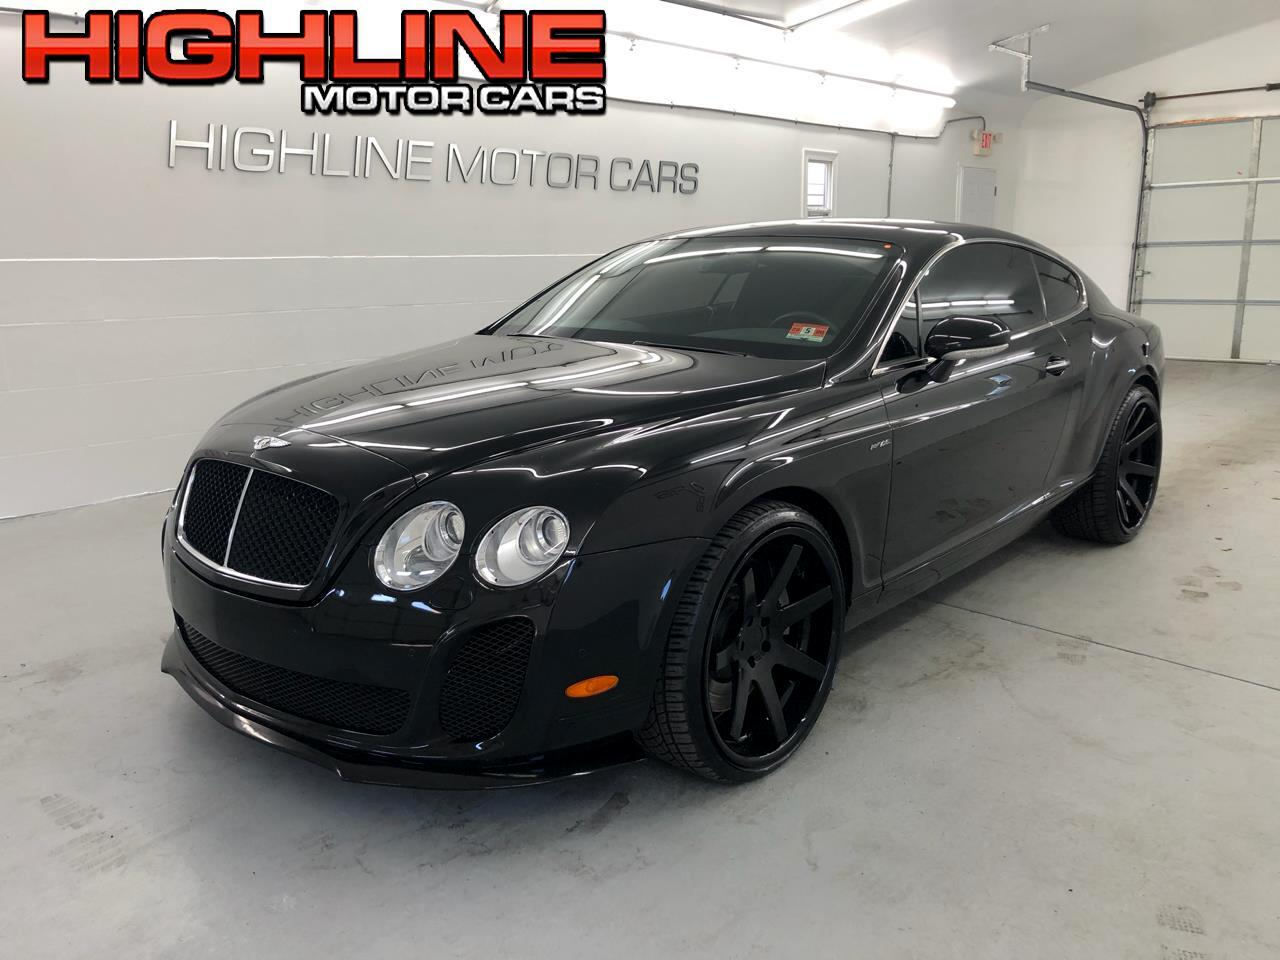 2009 Bentley Continental GT 2dr Cpe